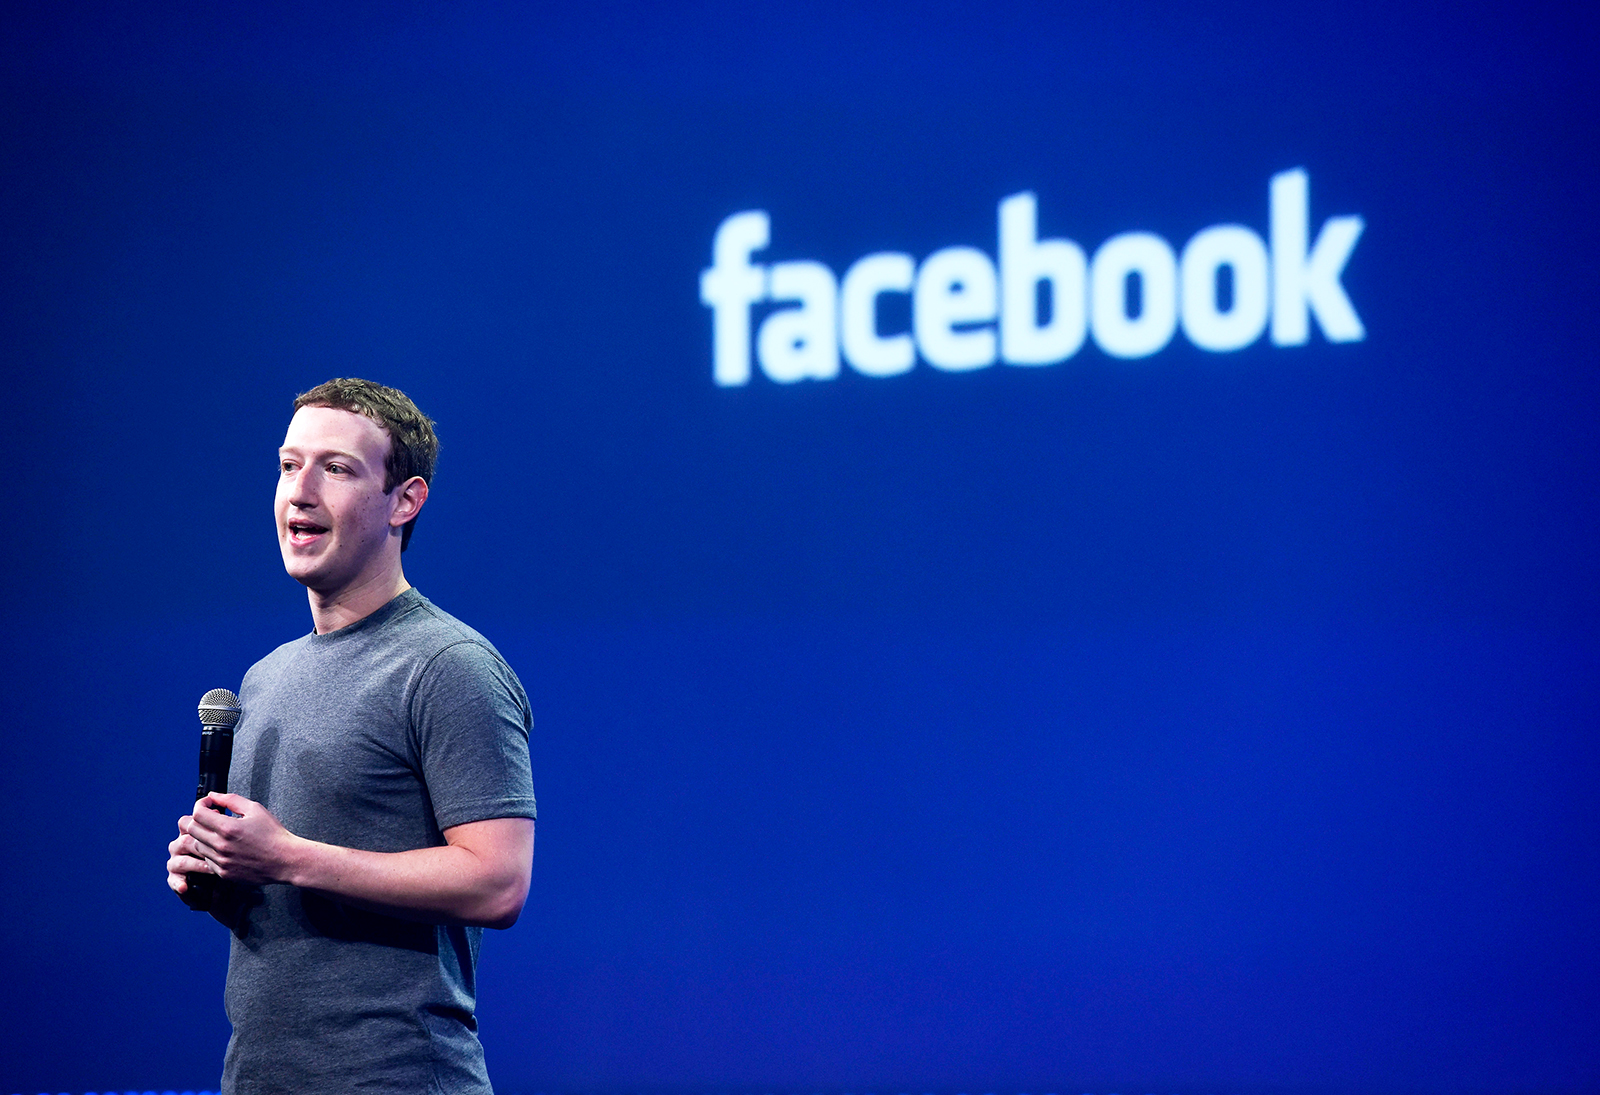 Fa Ceb Oo K Mark Zuckerberg Reveals Facebook S New Global Mission Statement